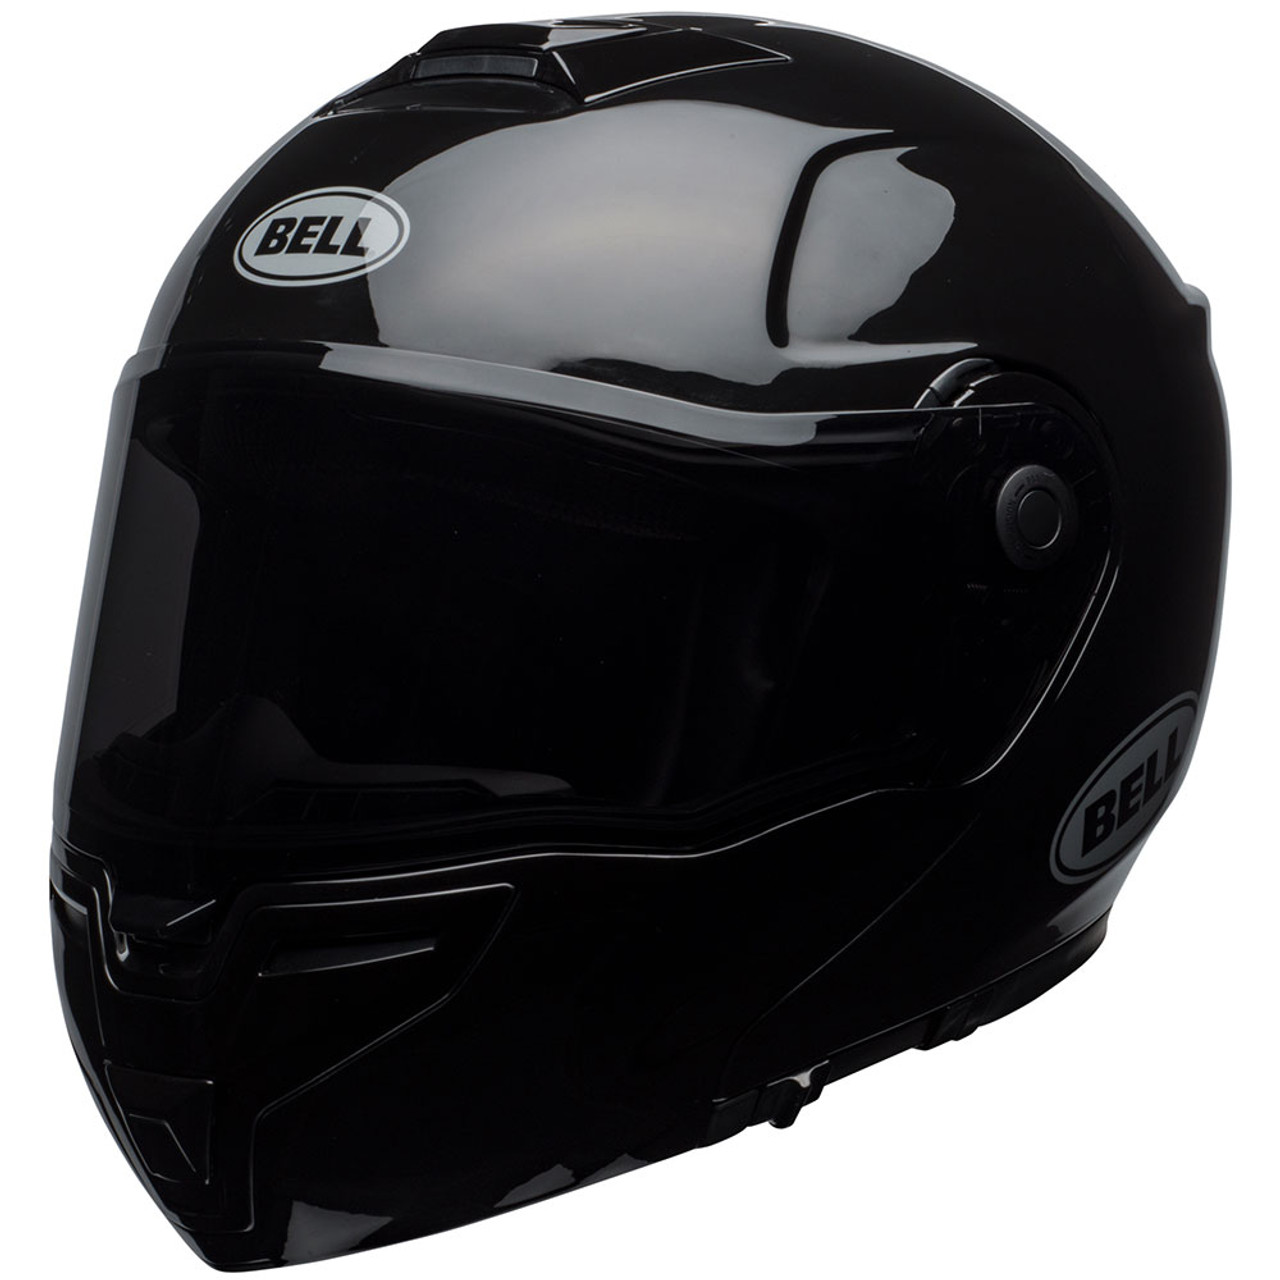 Bell Motorcycle Helmet >> Bell Srt Modular Motorcycle Helmet Gloss Black Get Lowered Cycles